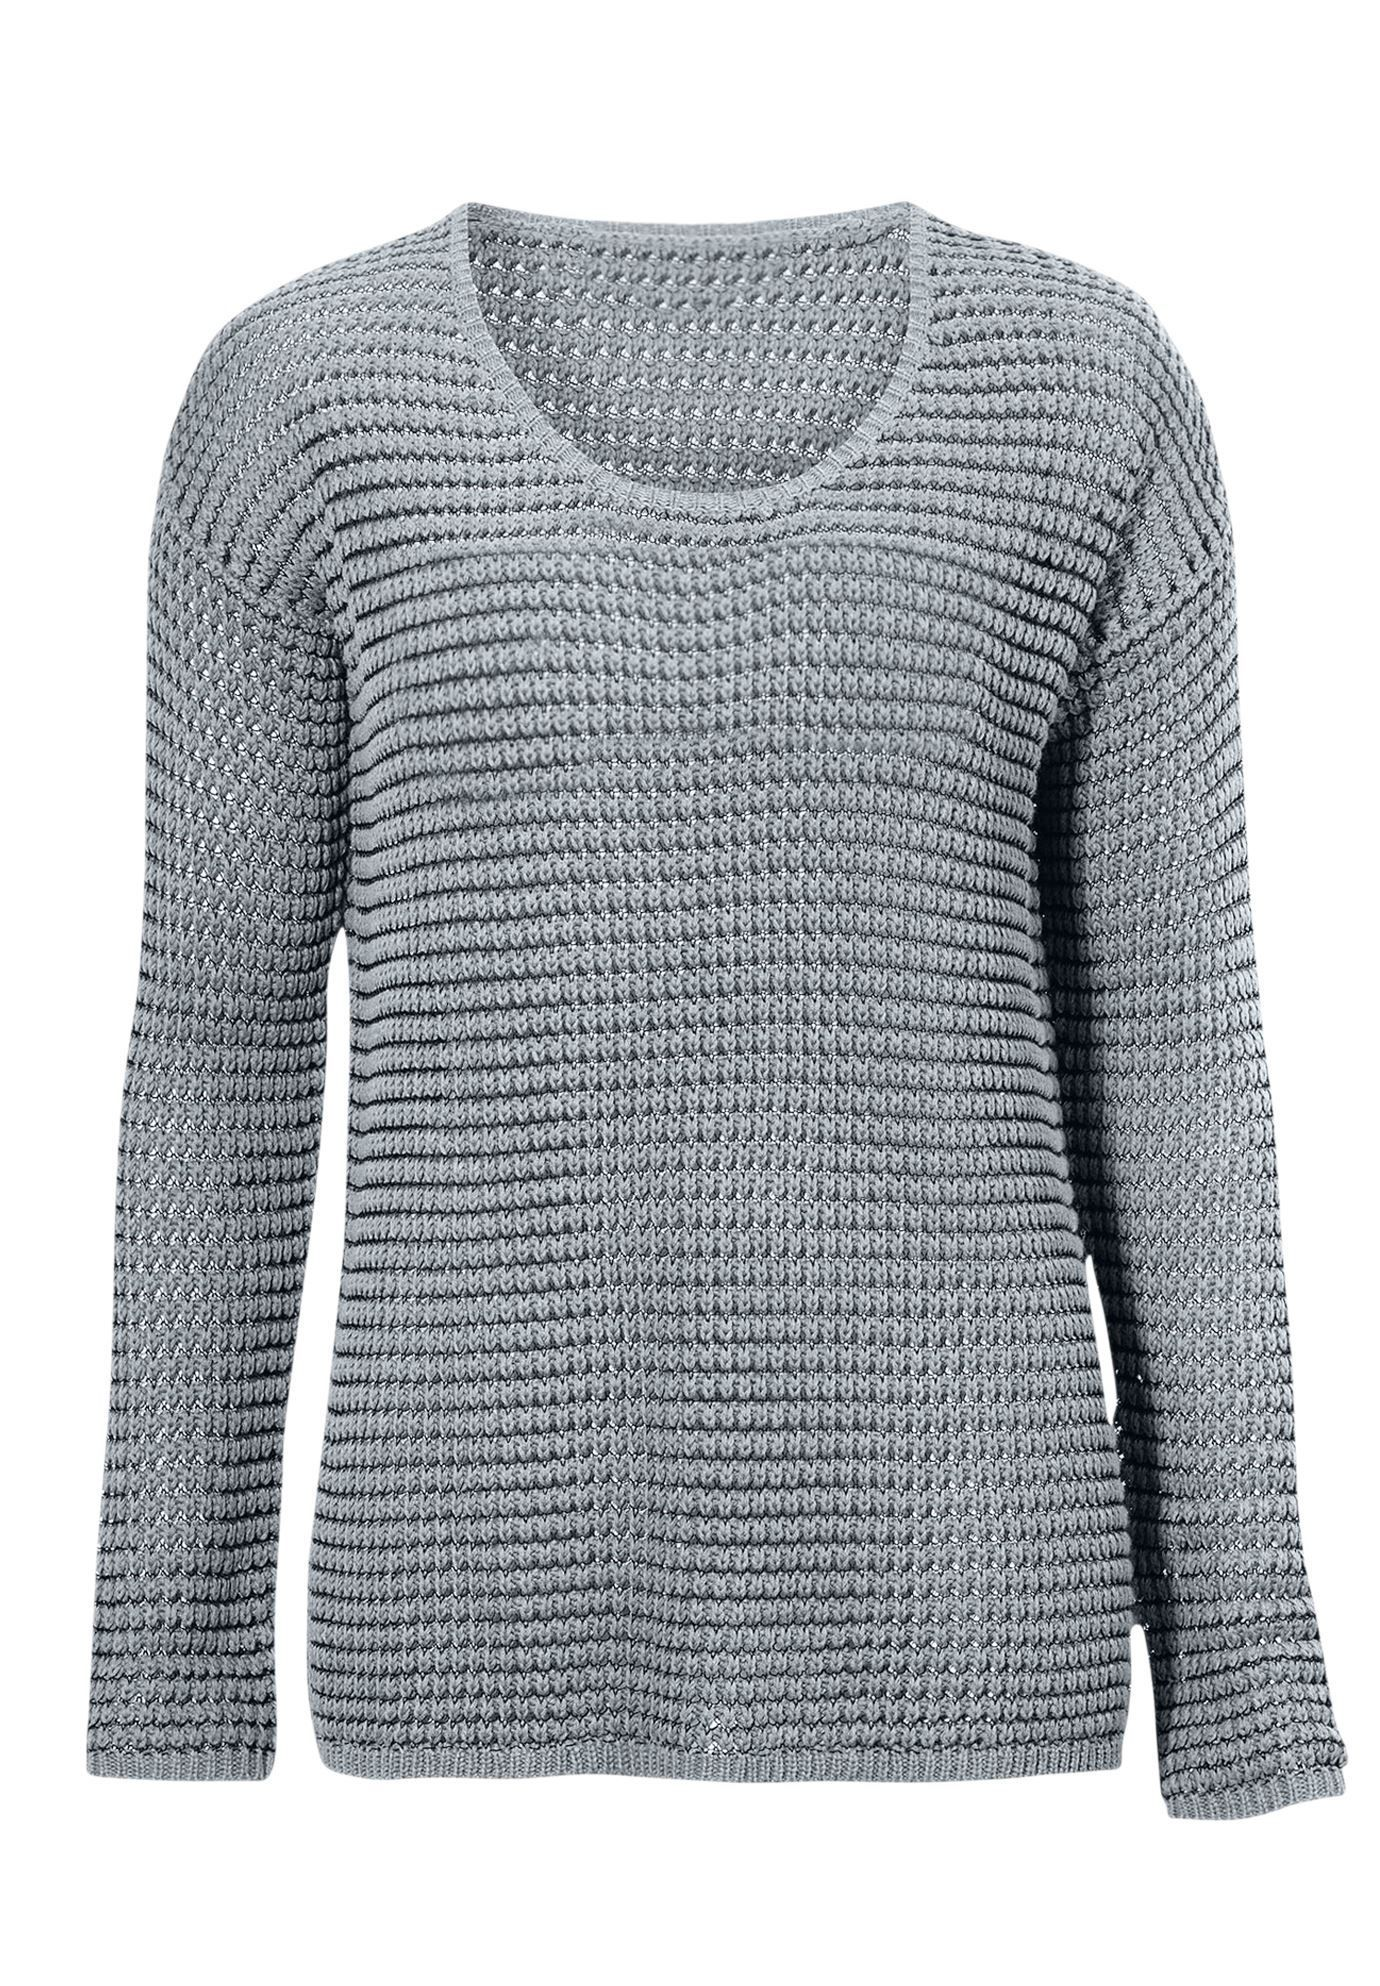 Chunky Knit Sweater By Ellos Womens Plus Size Clothing Products